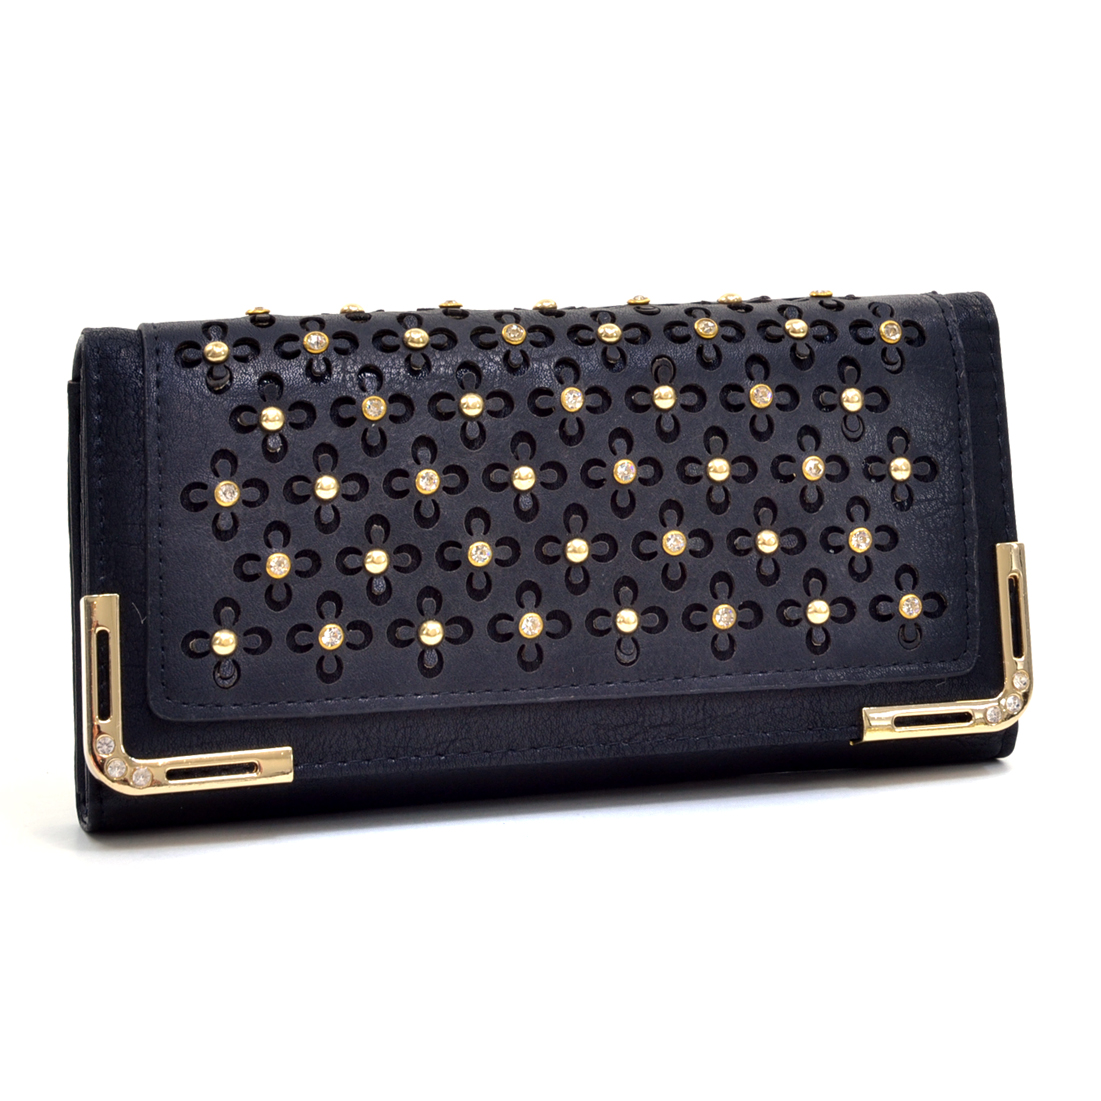 Rhinestone Studded Tri Fold Flower Wallet w/Removable Shoulder Strap